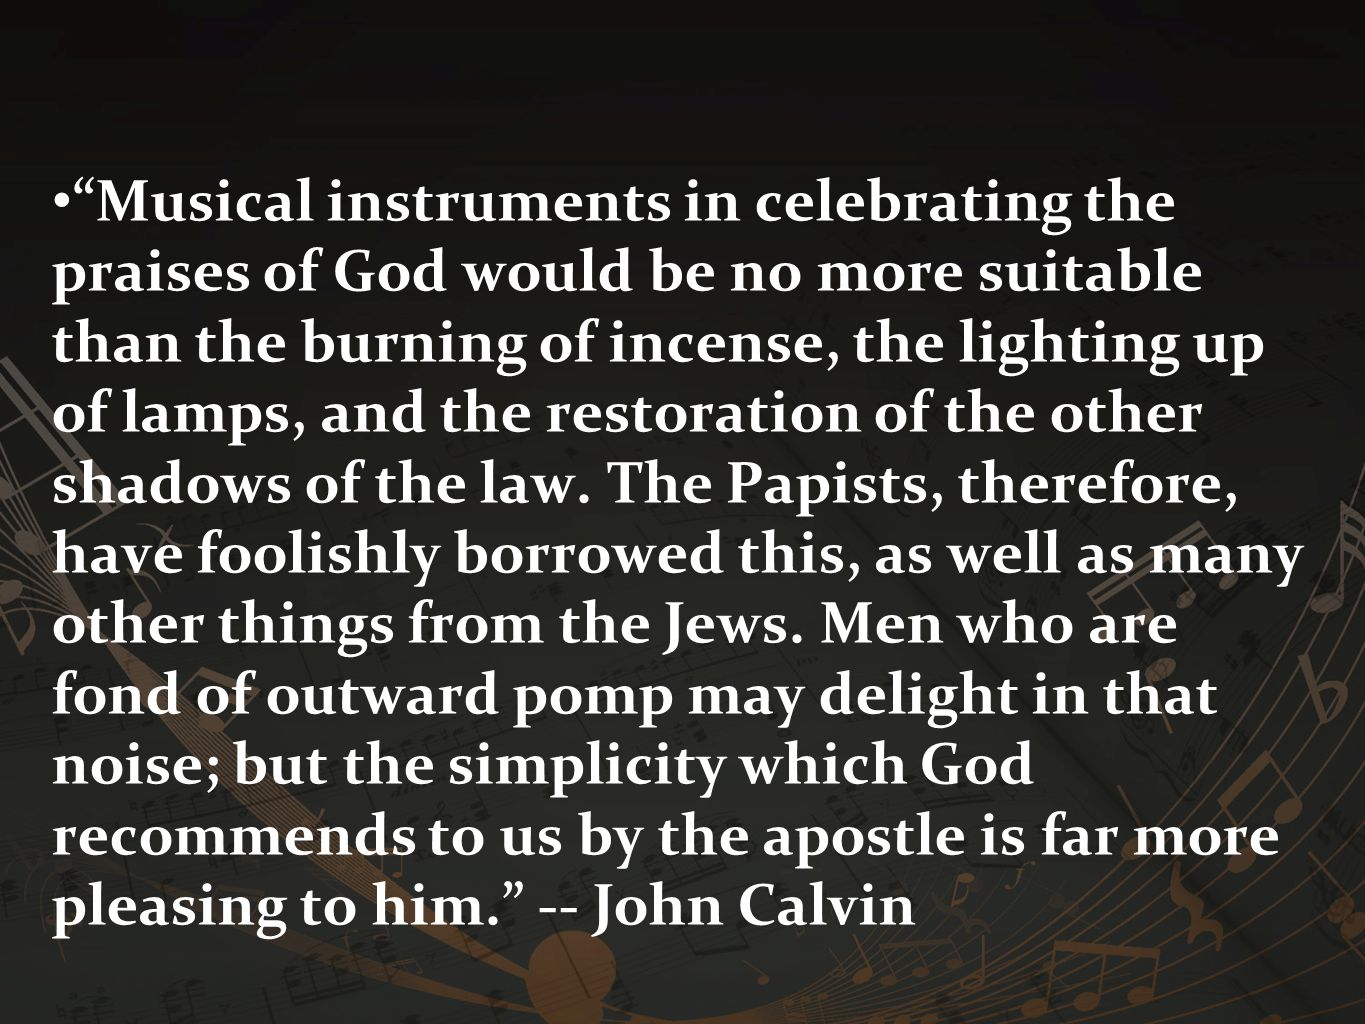 Musical instruments in celebrating the praises of God would be no more suitable than the burning of incense, the lighting up of lamps, and the restoration of the other shadows of the law.